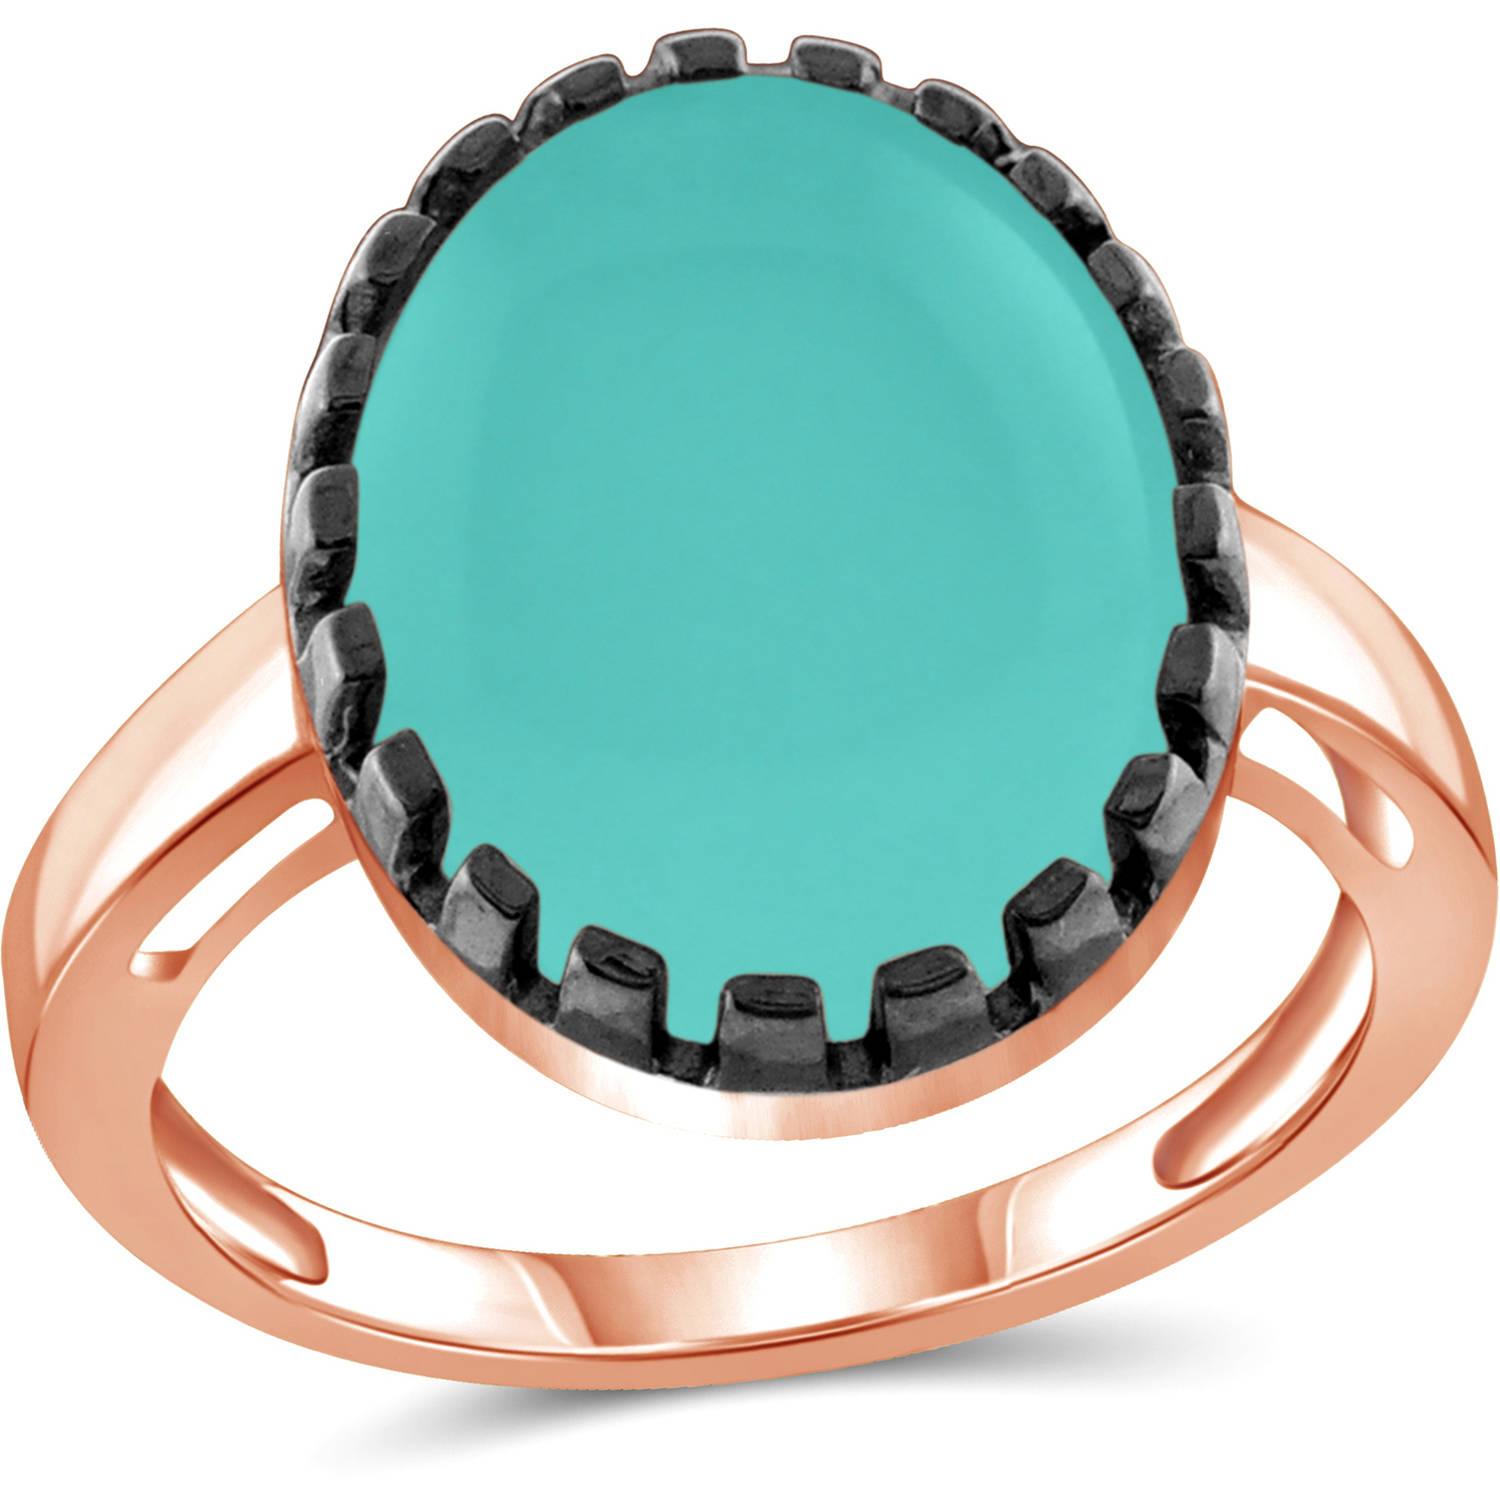 JewelersClub 9-3 4 Carat T.G.W. Chalcedony Rose Gold over Silver with Black Rhodium-Plated Fashion Ring by JewelersClub